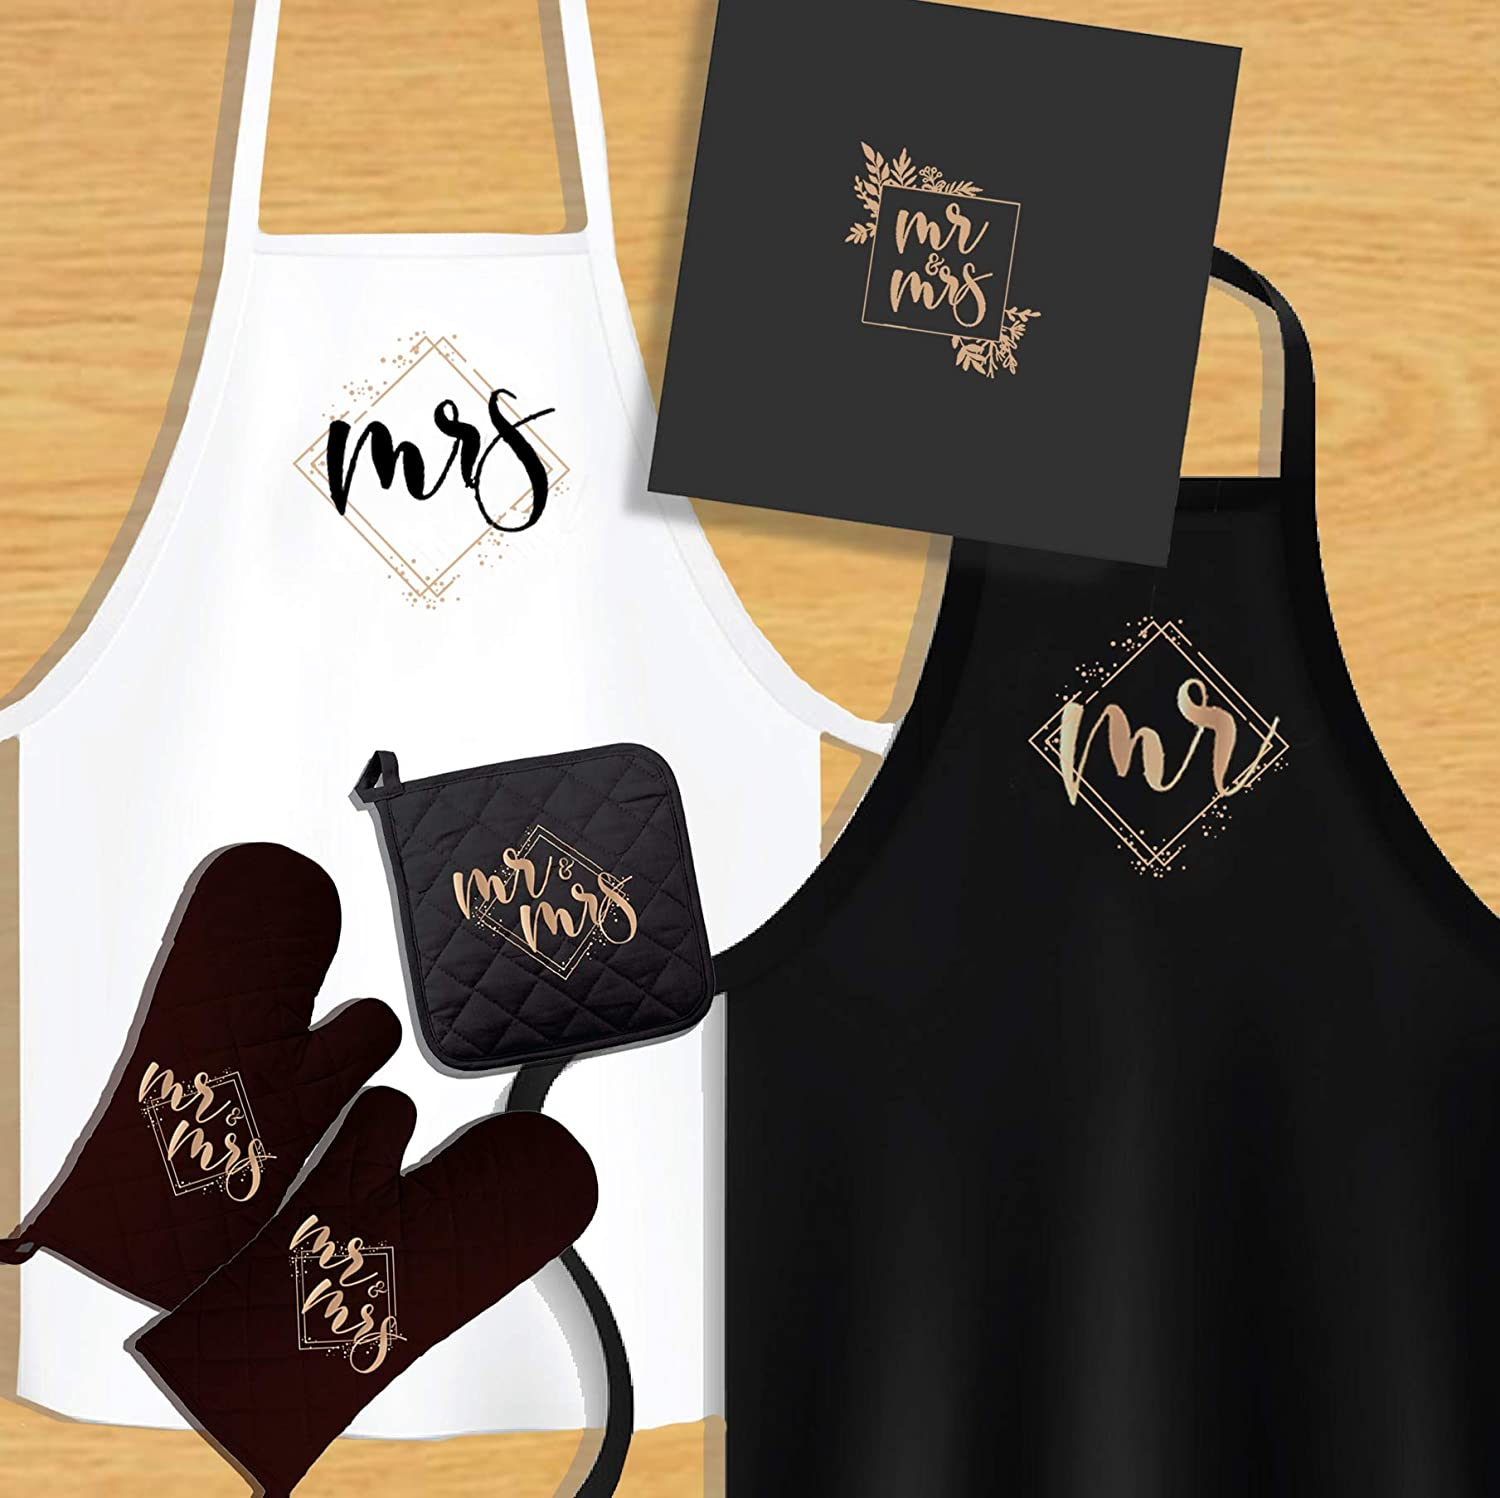 KEDRIAN Mr And Mrs Kitchen Set (5 Pieces), Couple Gifts, Wedding Gifts For Couple, Best Engagement Gifts For Couples, Mr And Mrs Gifts, Package Includes Oven Mitts, Pot Holder, Aprons For Couples, His